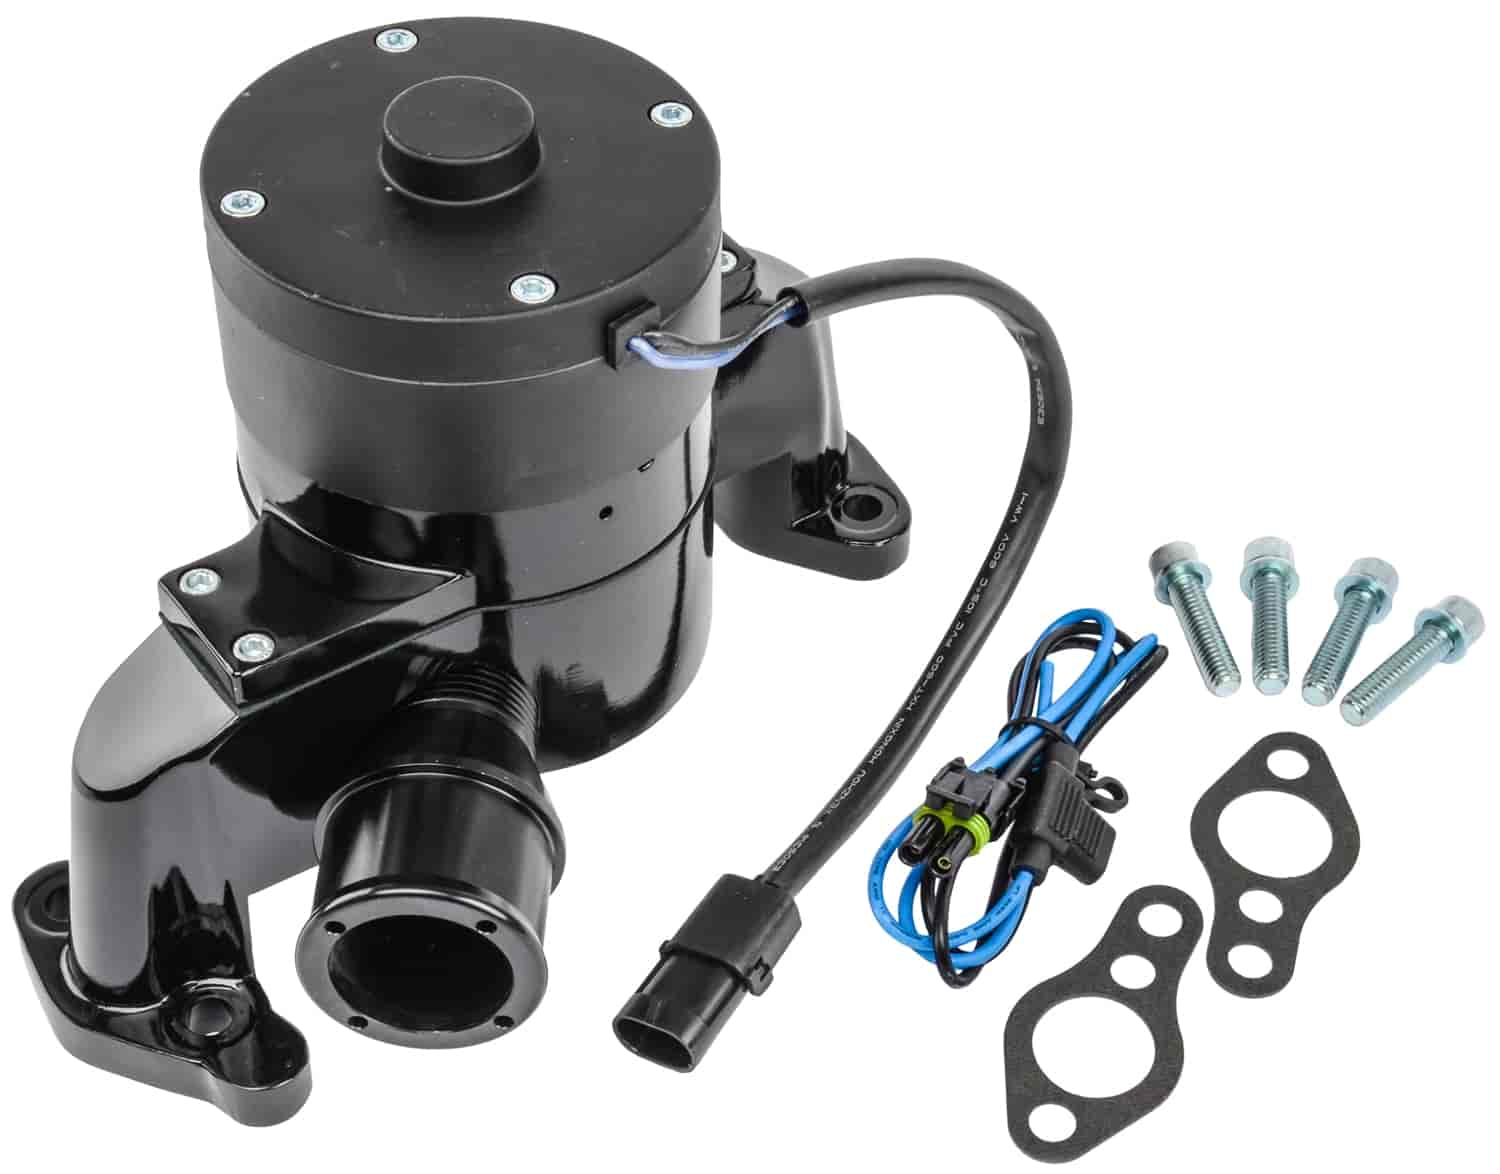 Proform 66225bk Electric Water Pump Sbc In Black Epoxy Powder 1966 Chevy Nova Which Froze With An Alternatorwiring